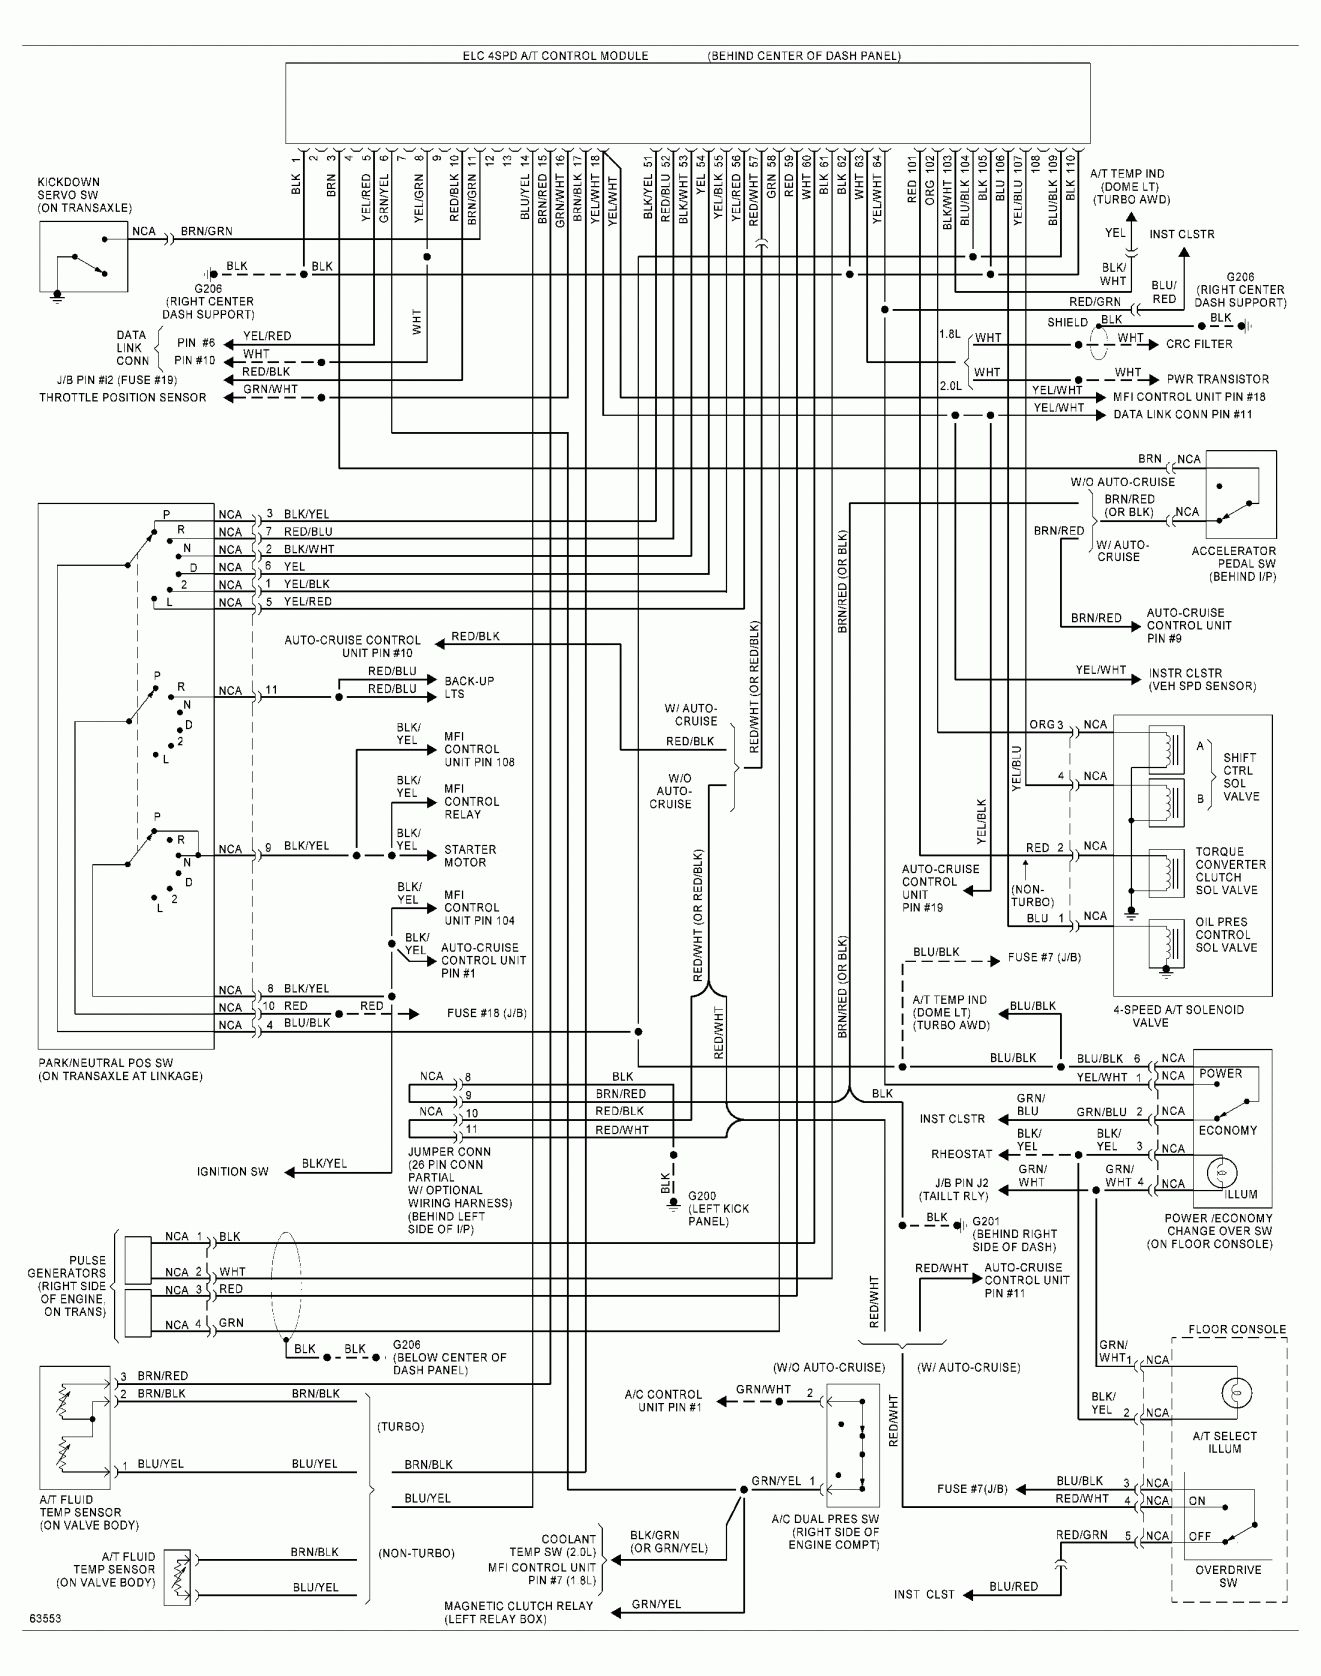 Mitsubishi 4g63 Engine Diagram Wiring Diagrams Datawire Datawire Massimocariello It